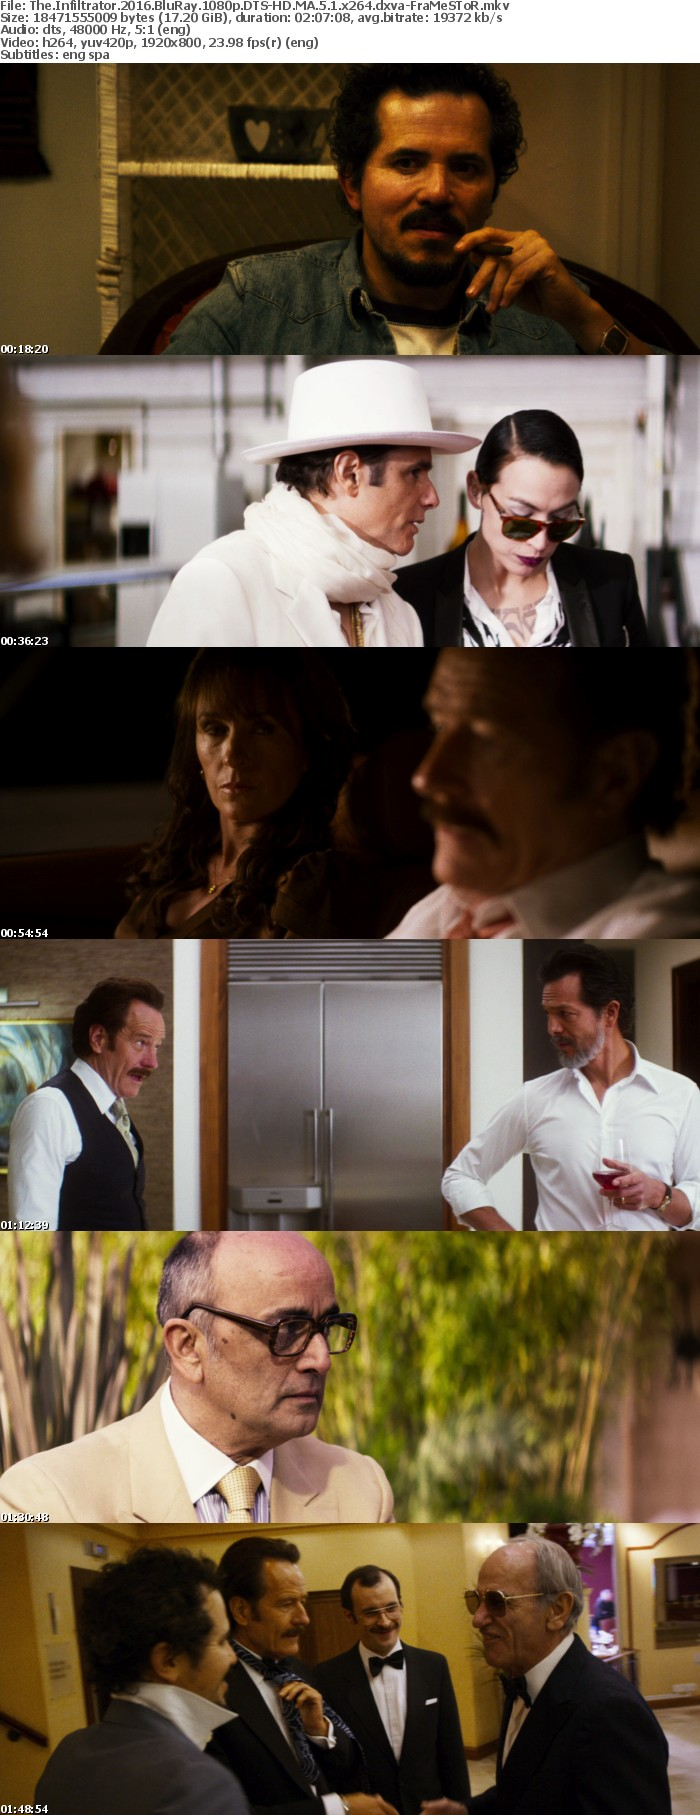 The Infiltrator 2016 BluRay 1080p DTS-HD MA 5 1 x264 dxva-FraMeSToR